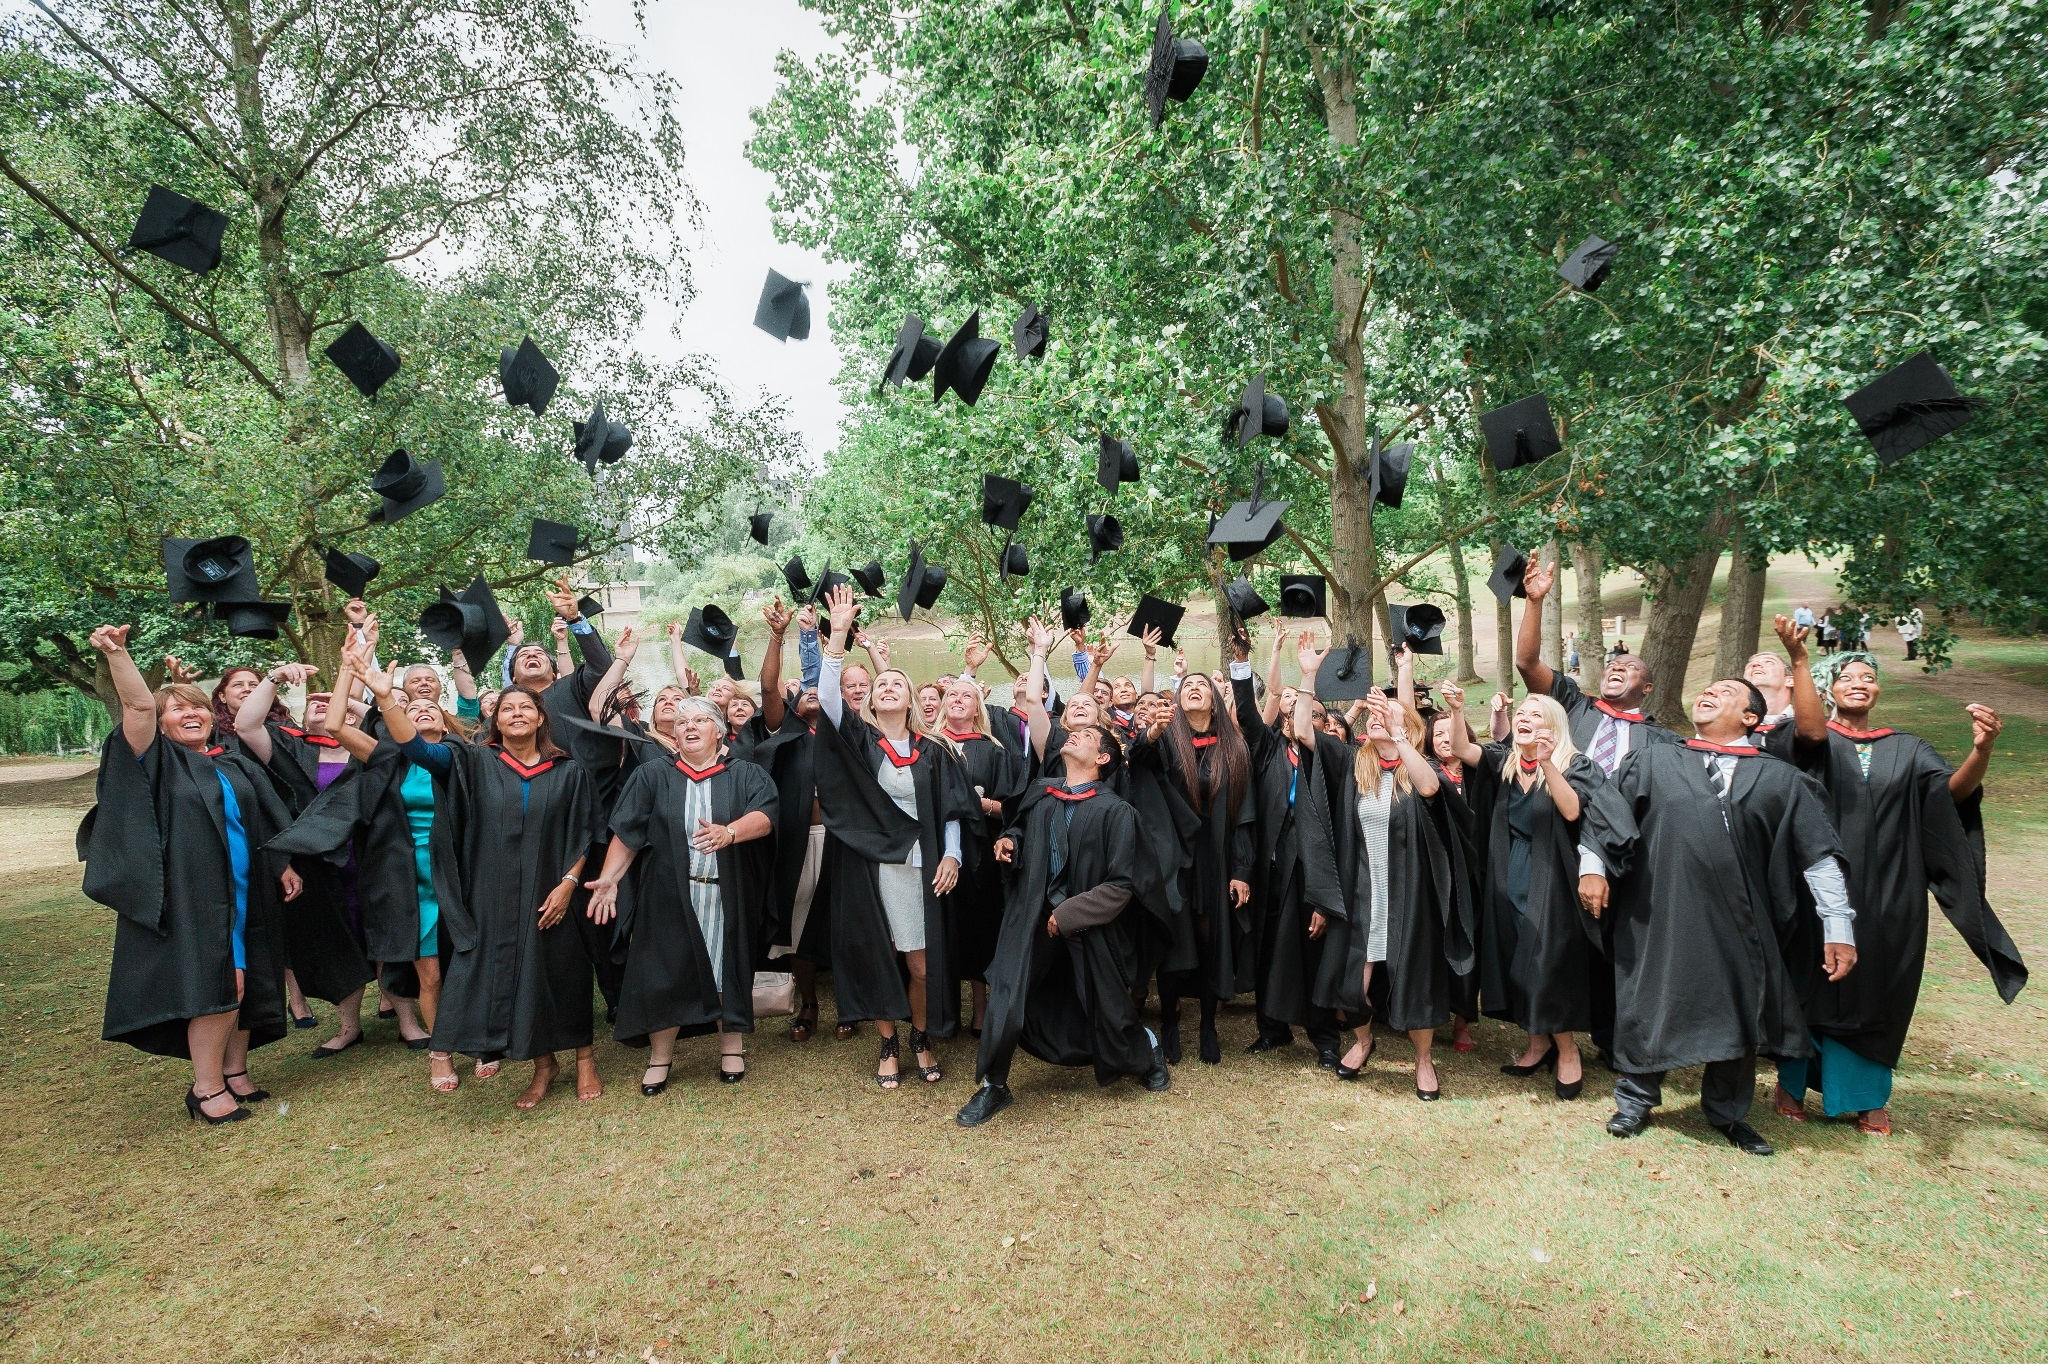 University of Essex Online graduation 2015